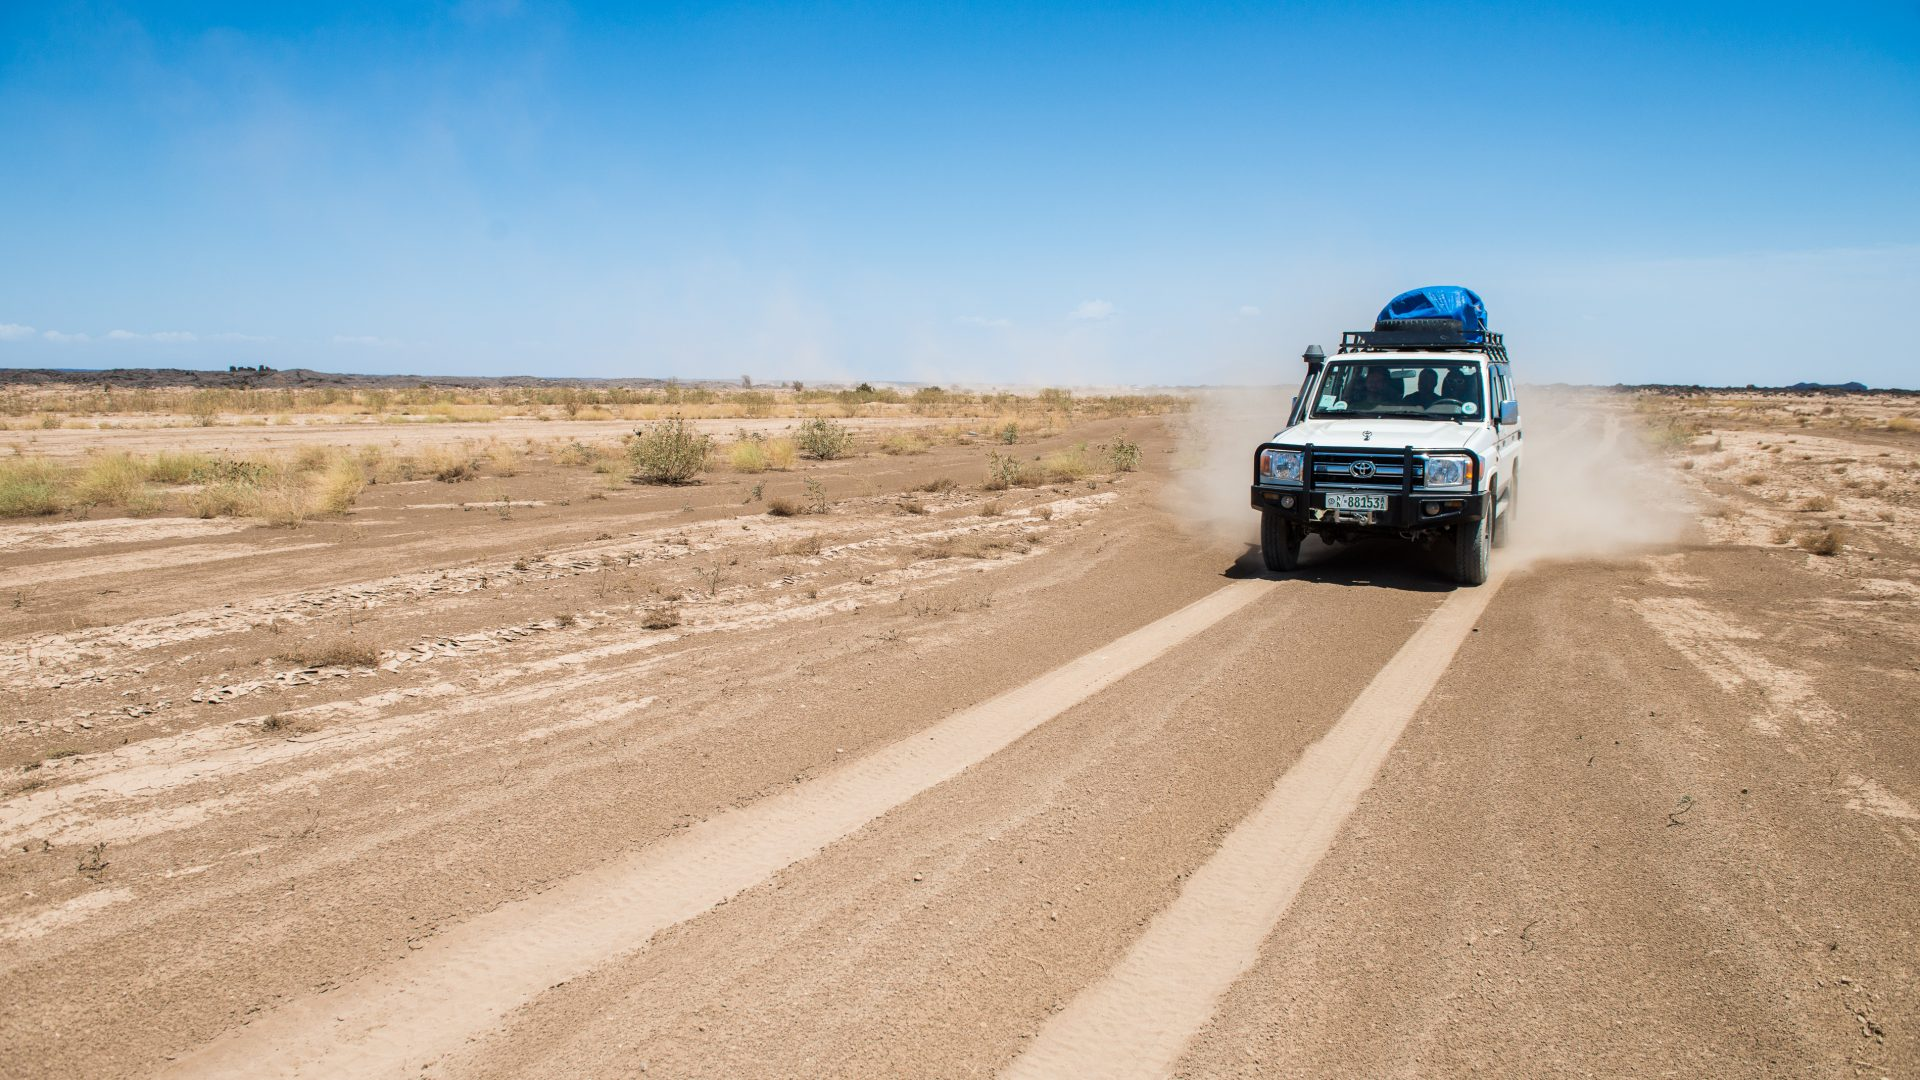 A jeep drives one of the dirt roads in the Danakil Depression